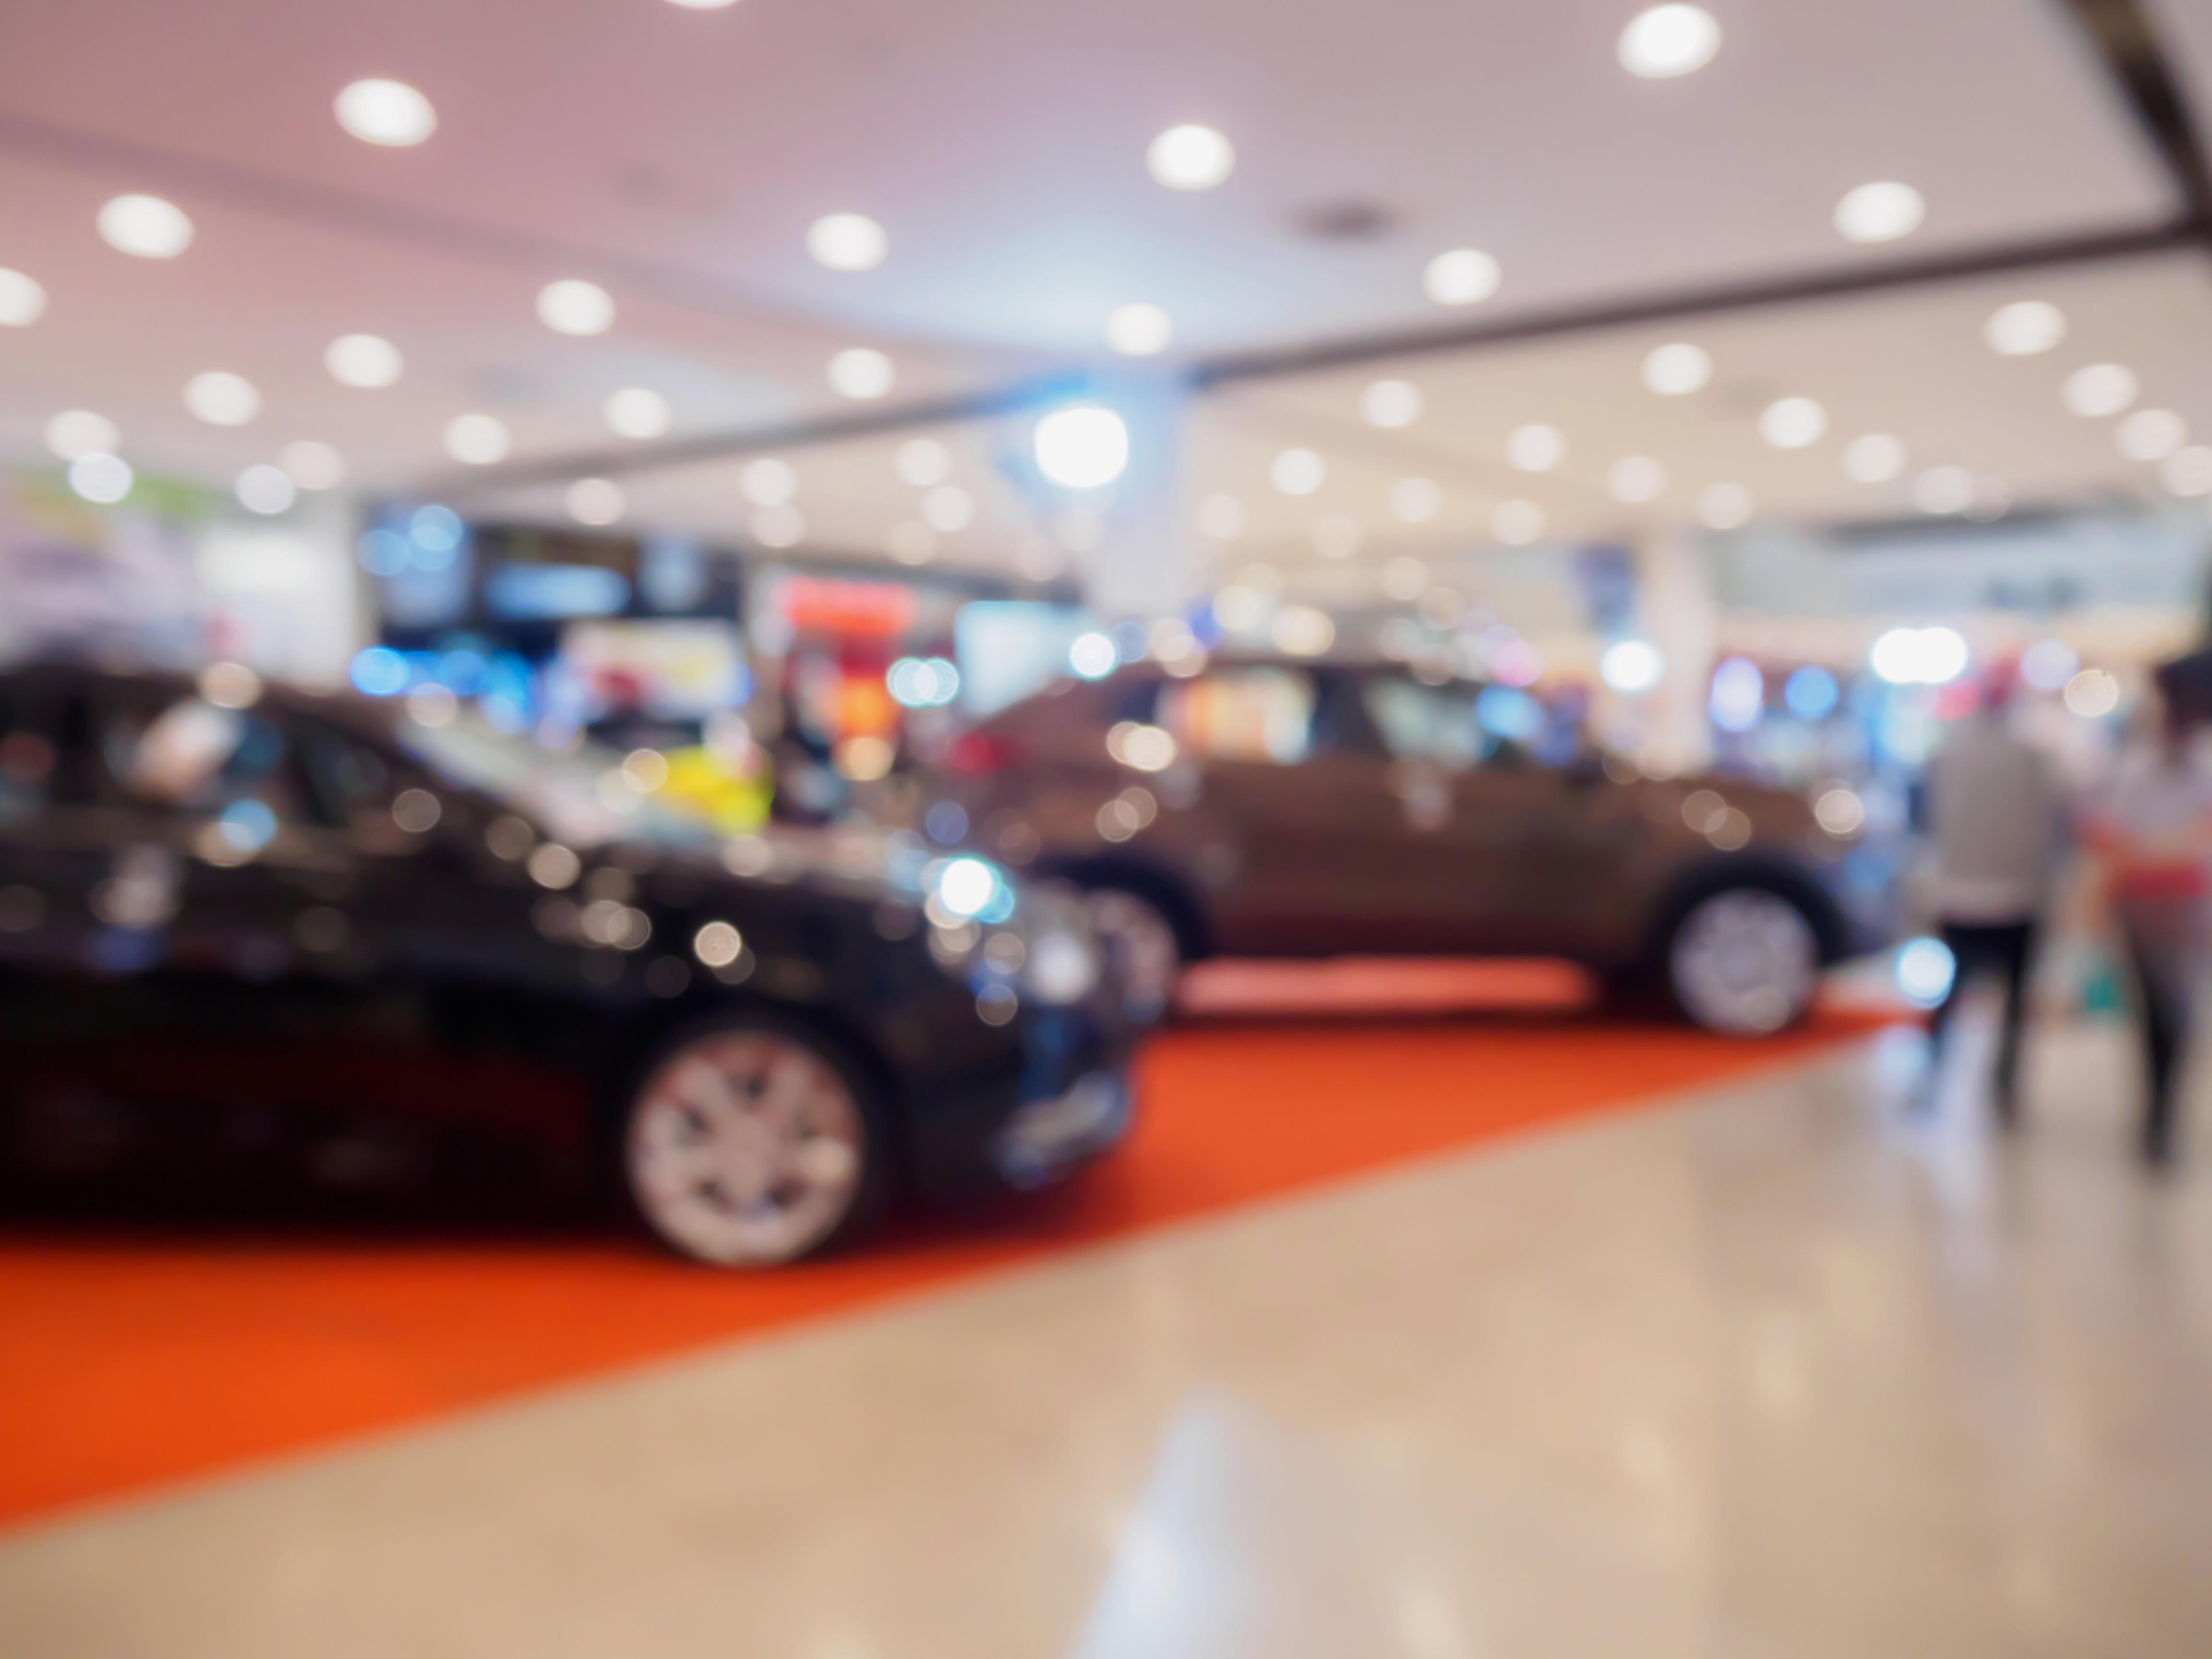 LDV Announce New Dealerships in Expansion Plans